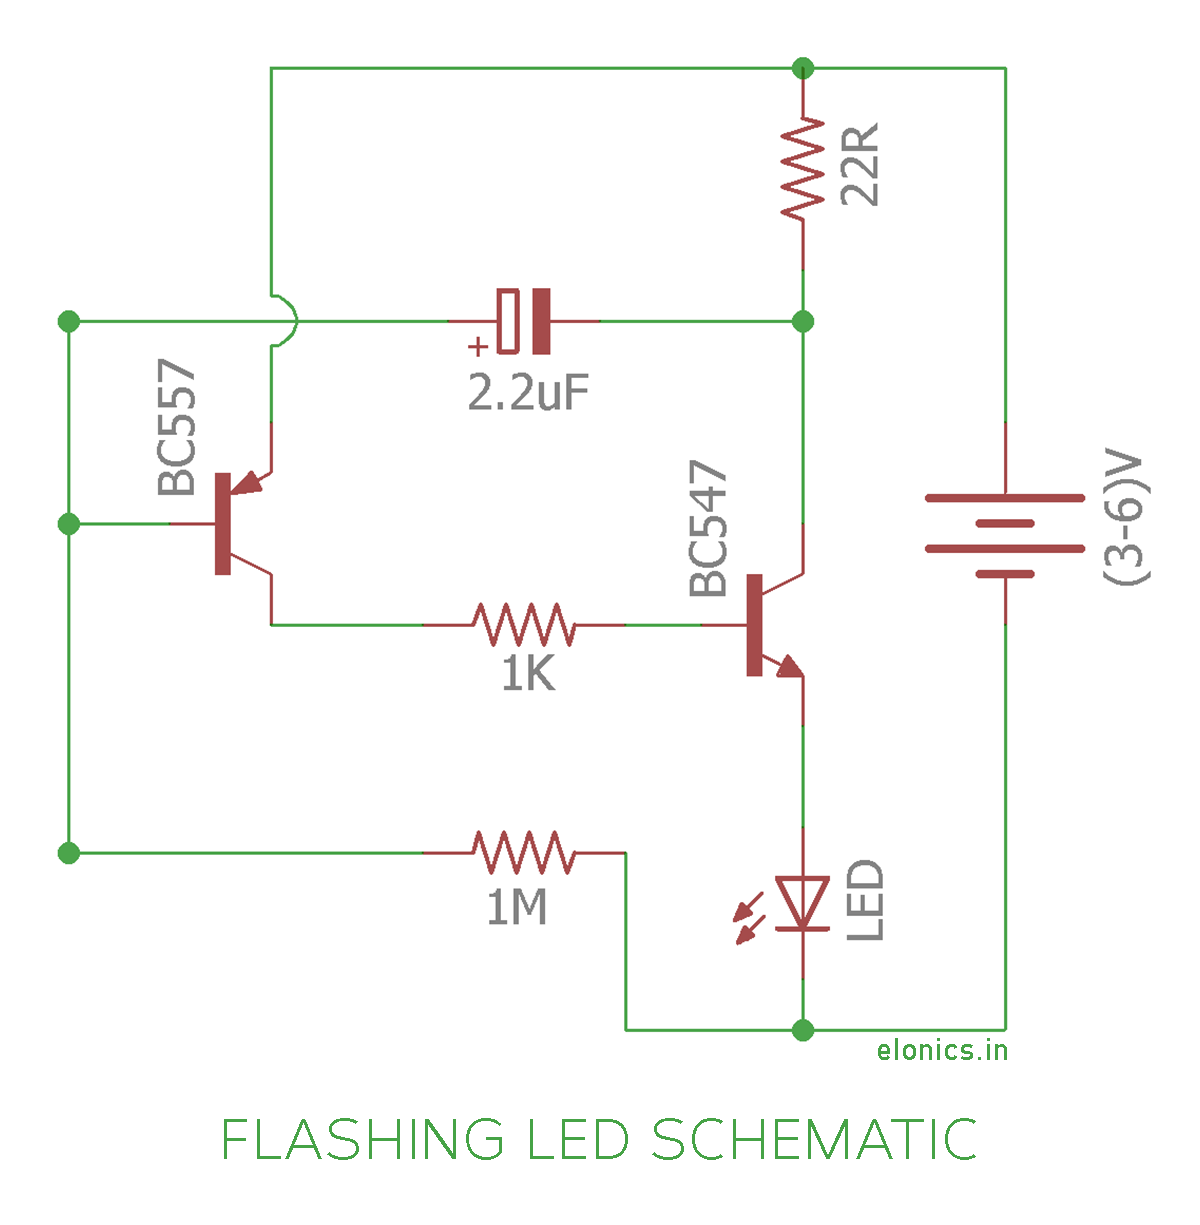 flashing blinking led circuit using transistors schematic rh pinterest com simple flashing led circuit diagram simple flashing led circuit diagram